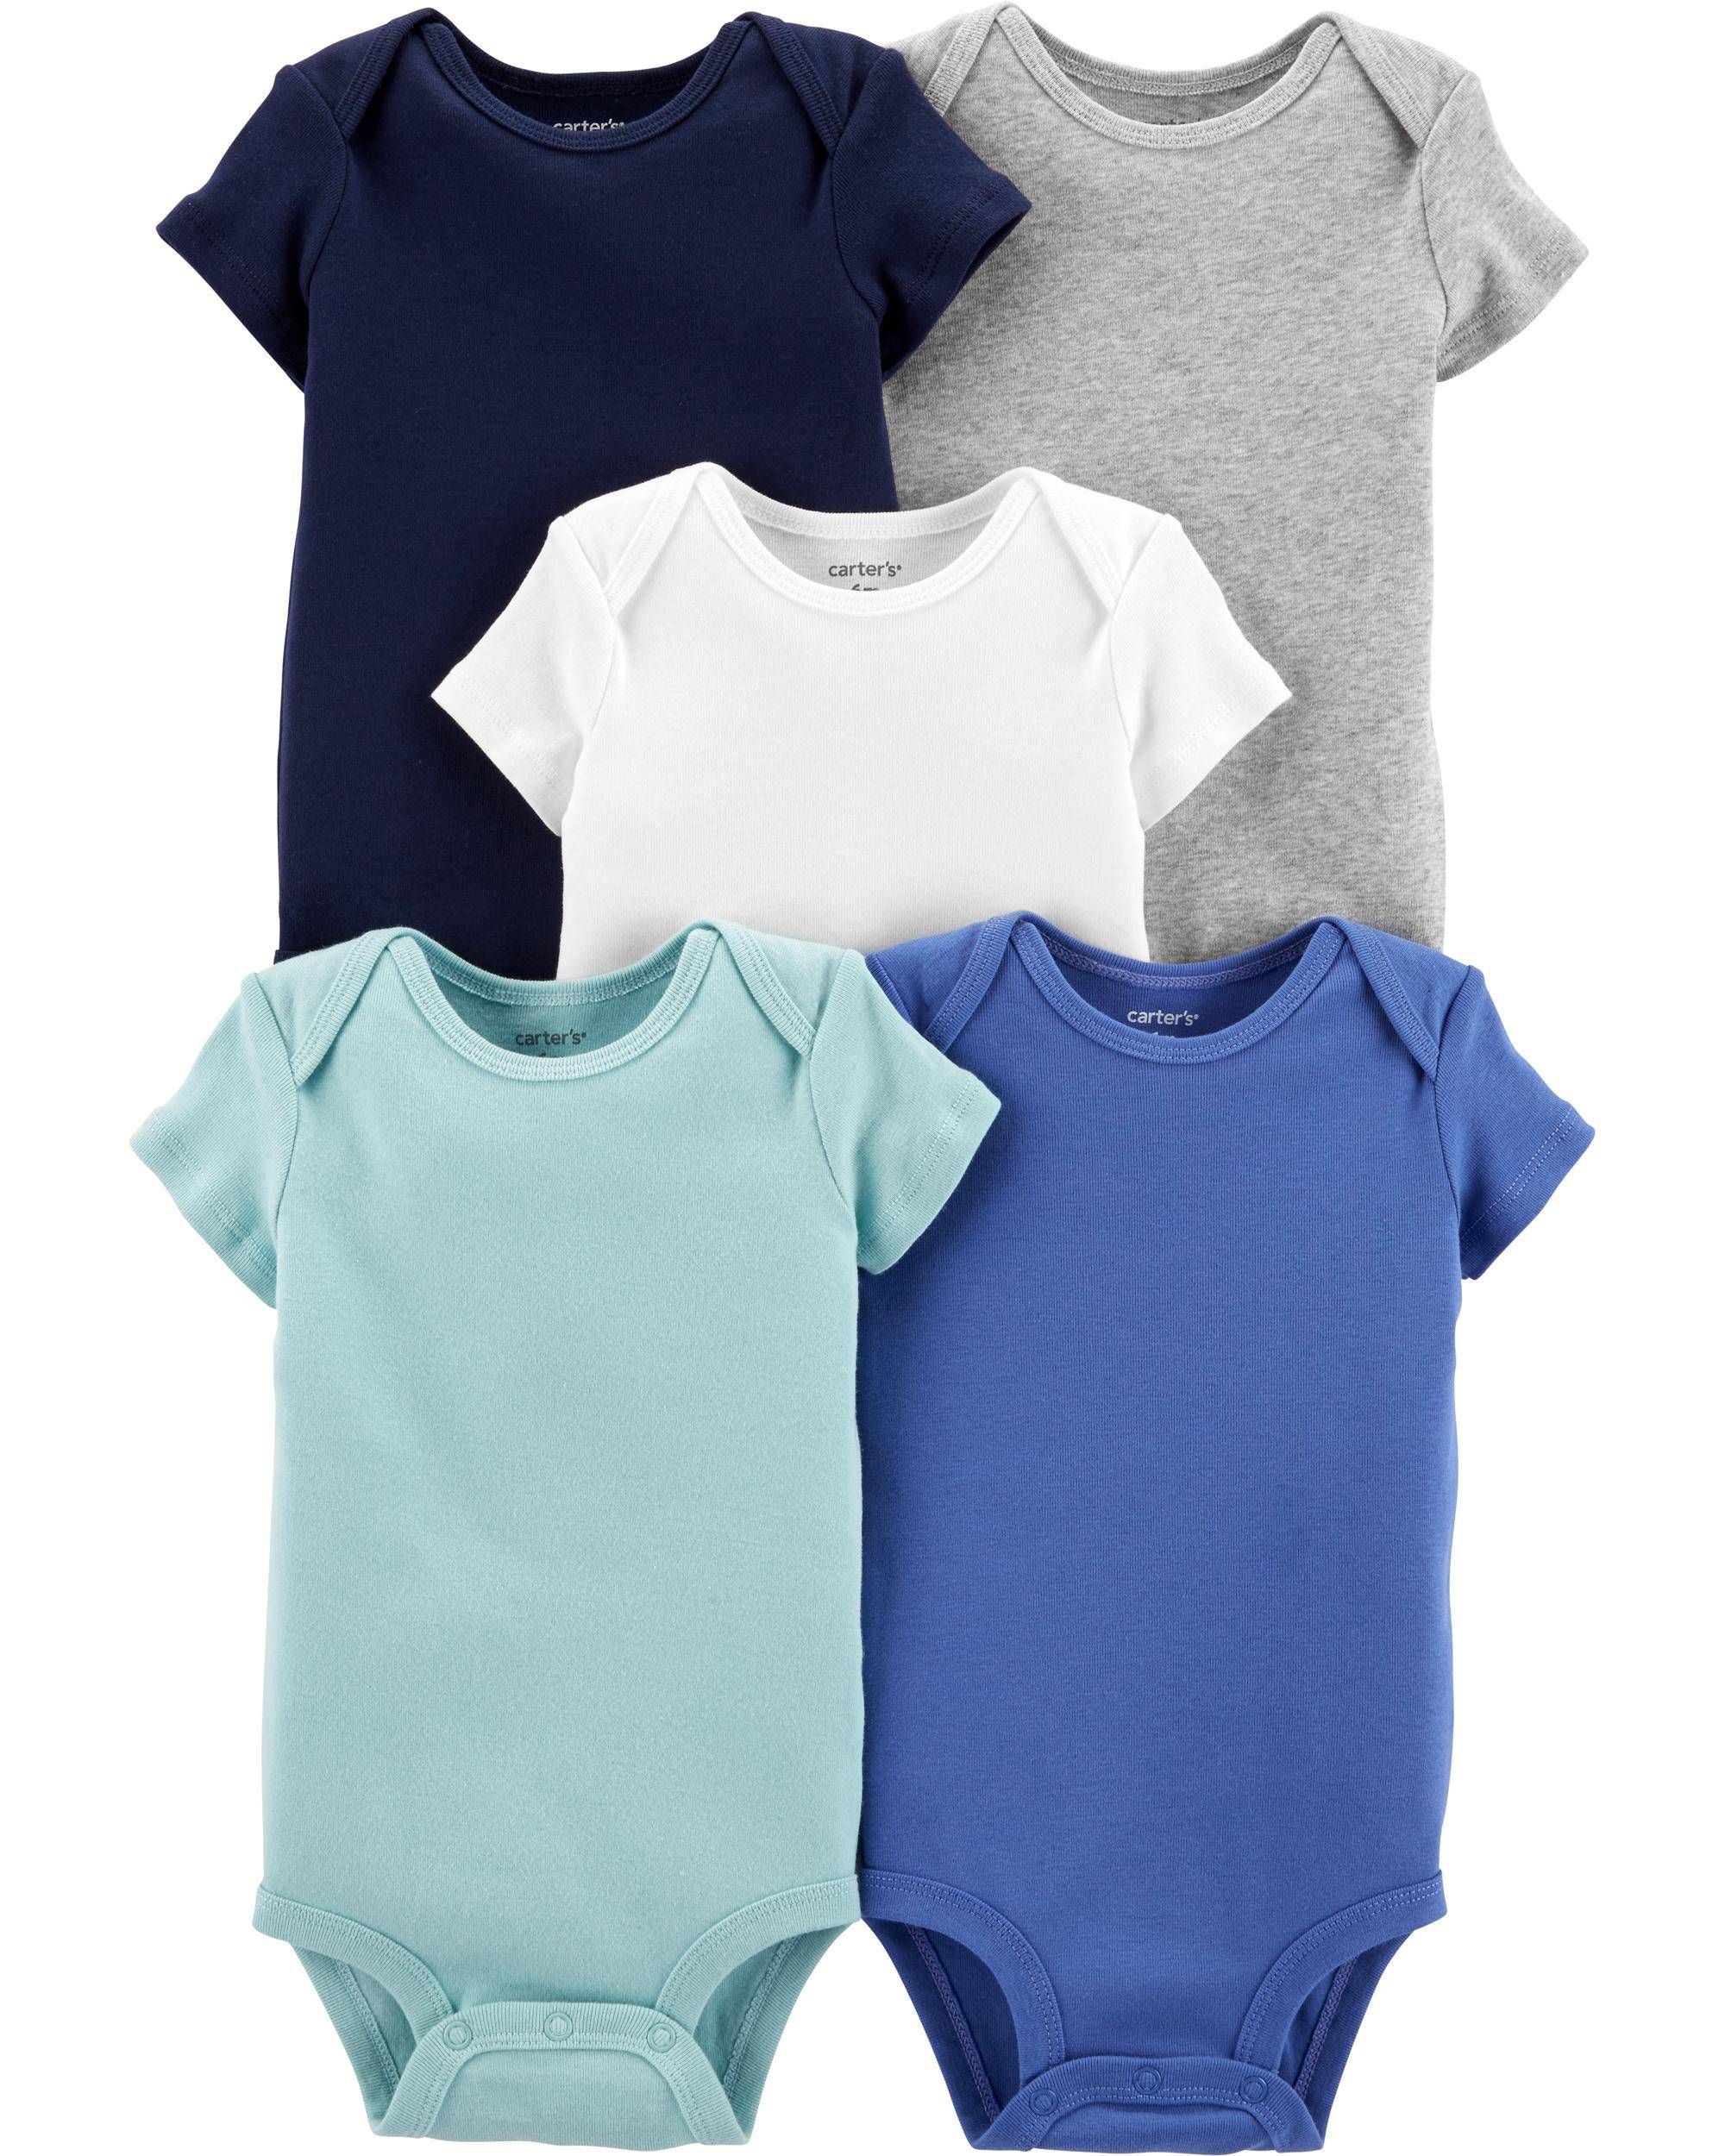 Twins Baby Unisex Organic Cotton Short-Sleeved Bodysuit Pack of 5